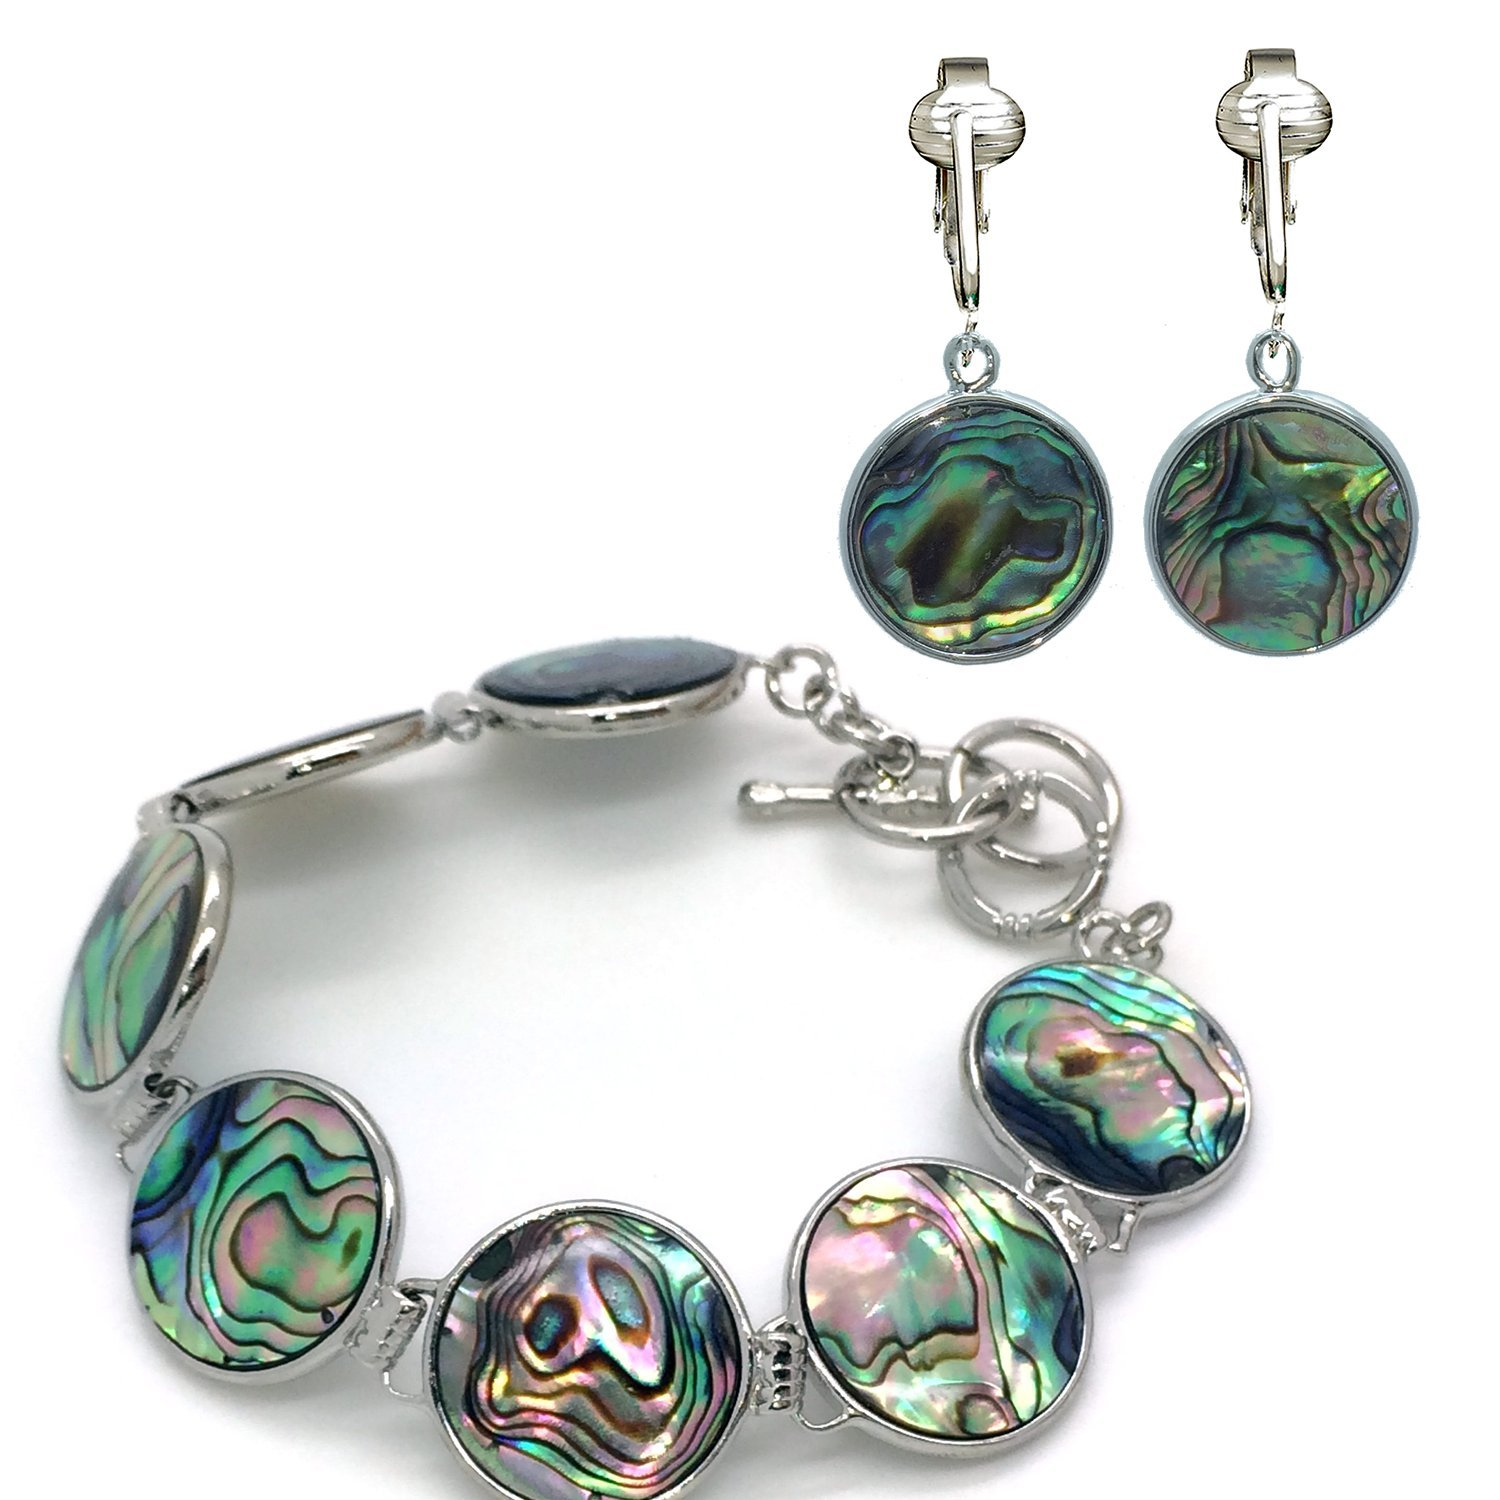 Tahitian-Style Abalone Paua Shell Clip On Earrings-Authentic Ocean Shells Romantic Holiday, Authentic (Paua Round/Bracelet Jewelry Set)